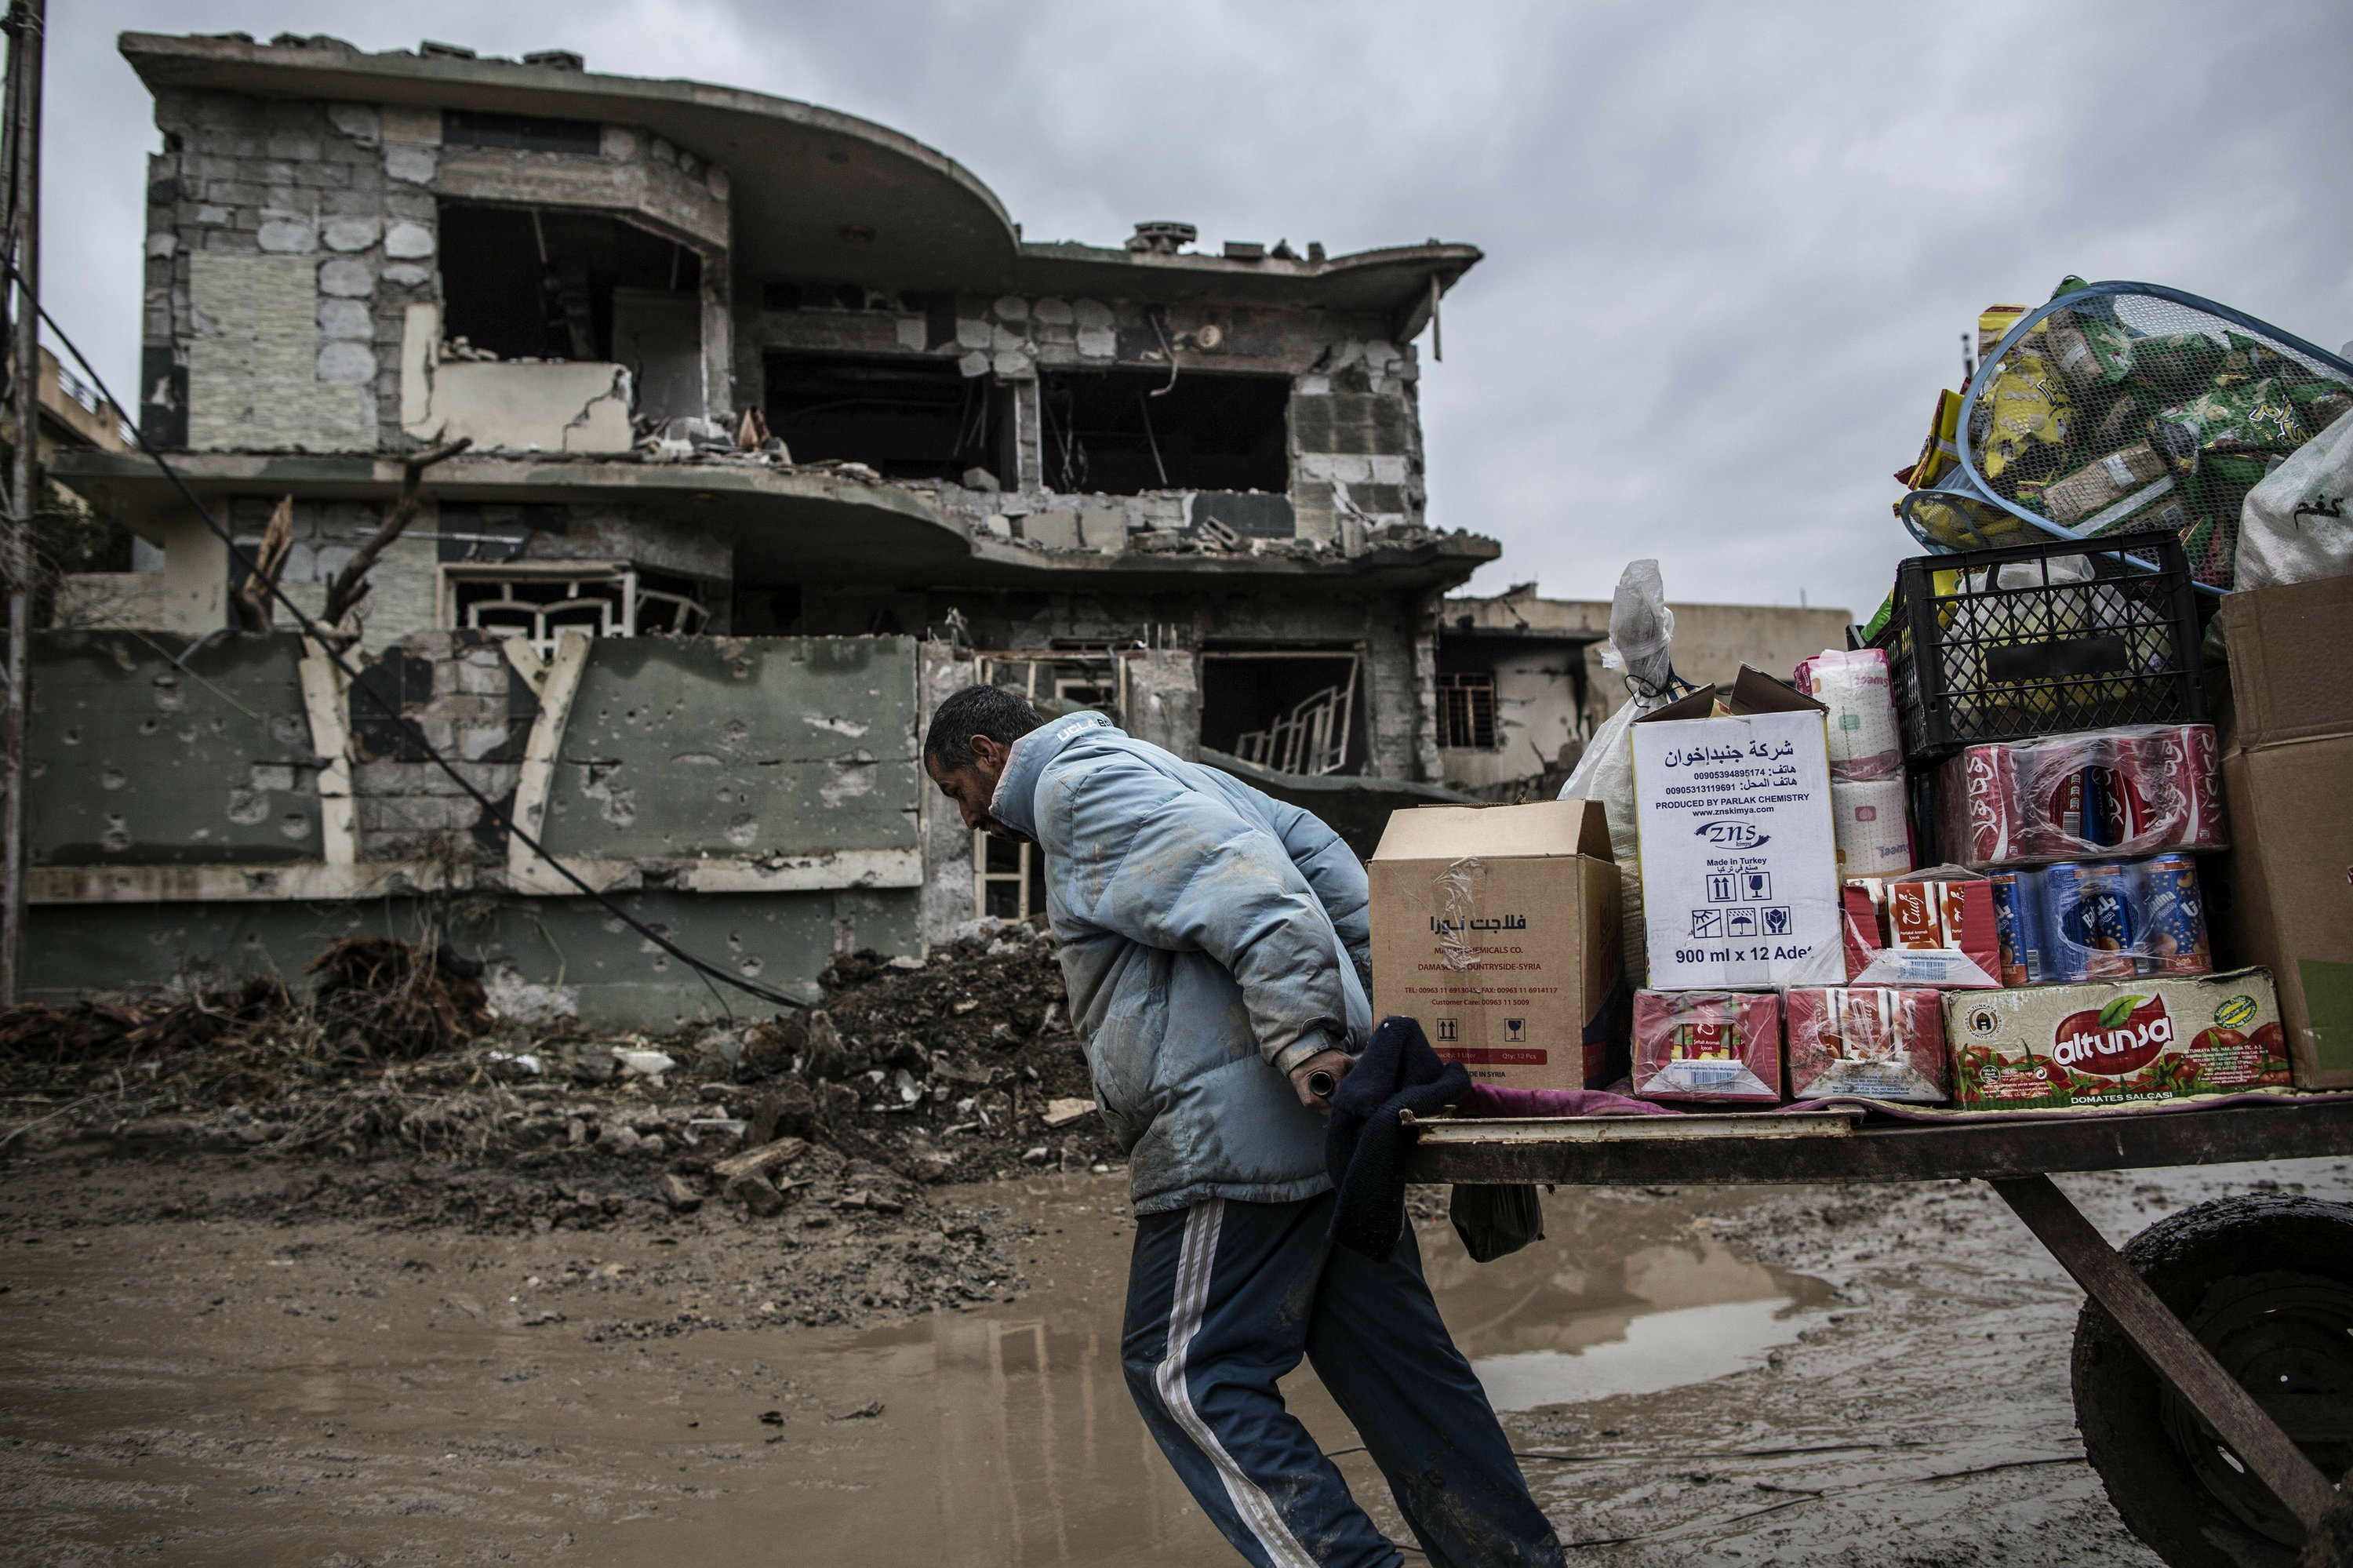 Rights group: IS in Mosul targets civilians as it retreats